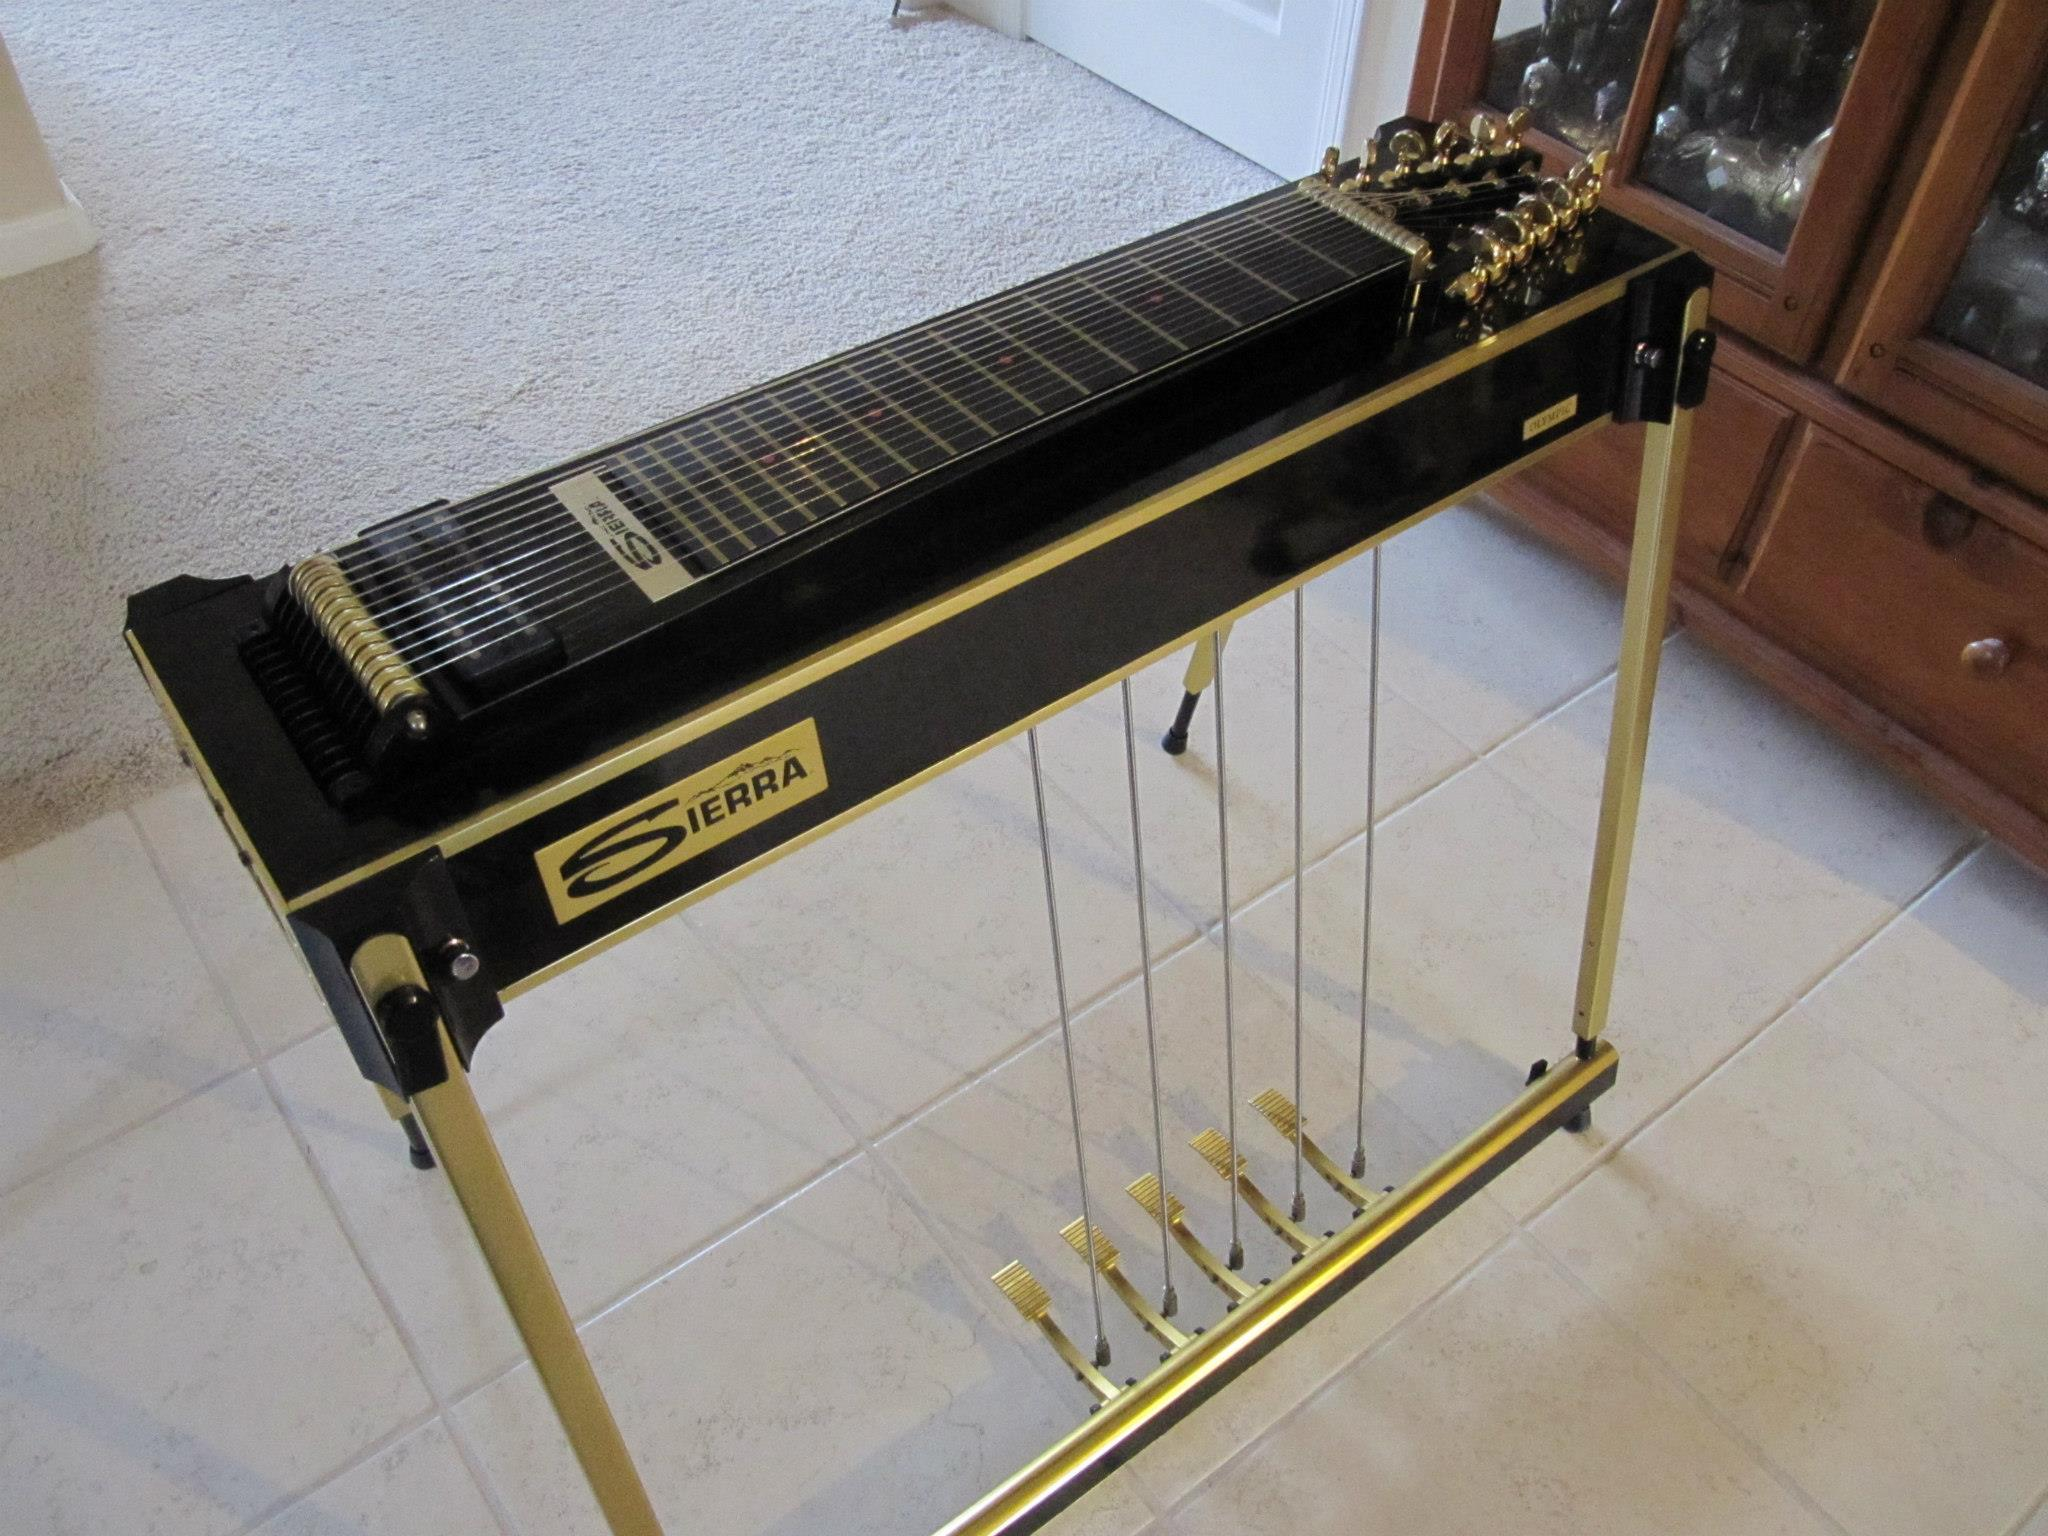 No Spark 897575 additionally 18 Watt Folding Kit furthermore Sold194 besides Breakout Box 232m En likewise Pedal Steel. on universal fuse box